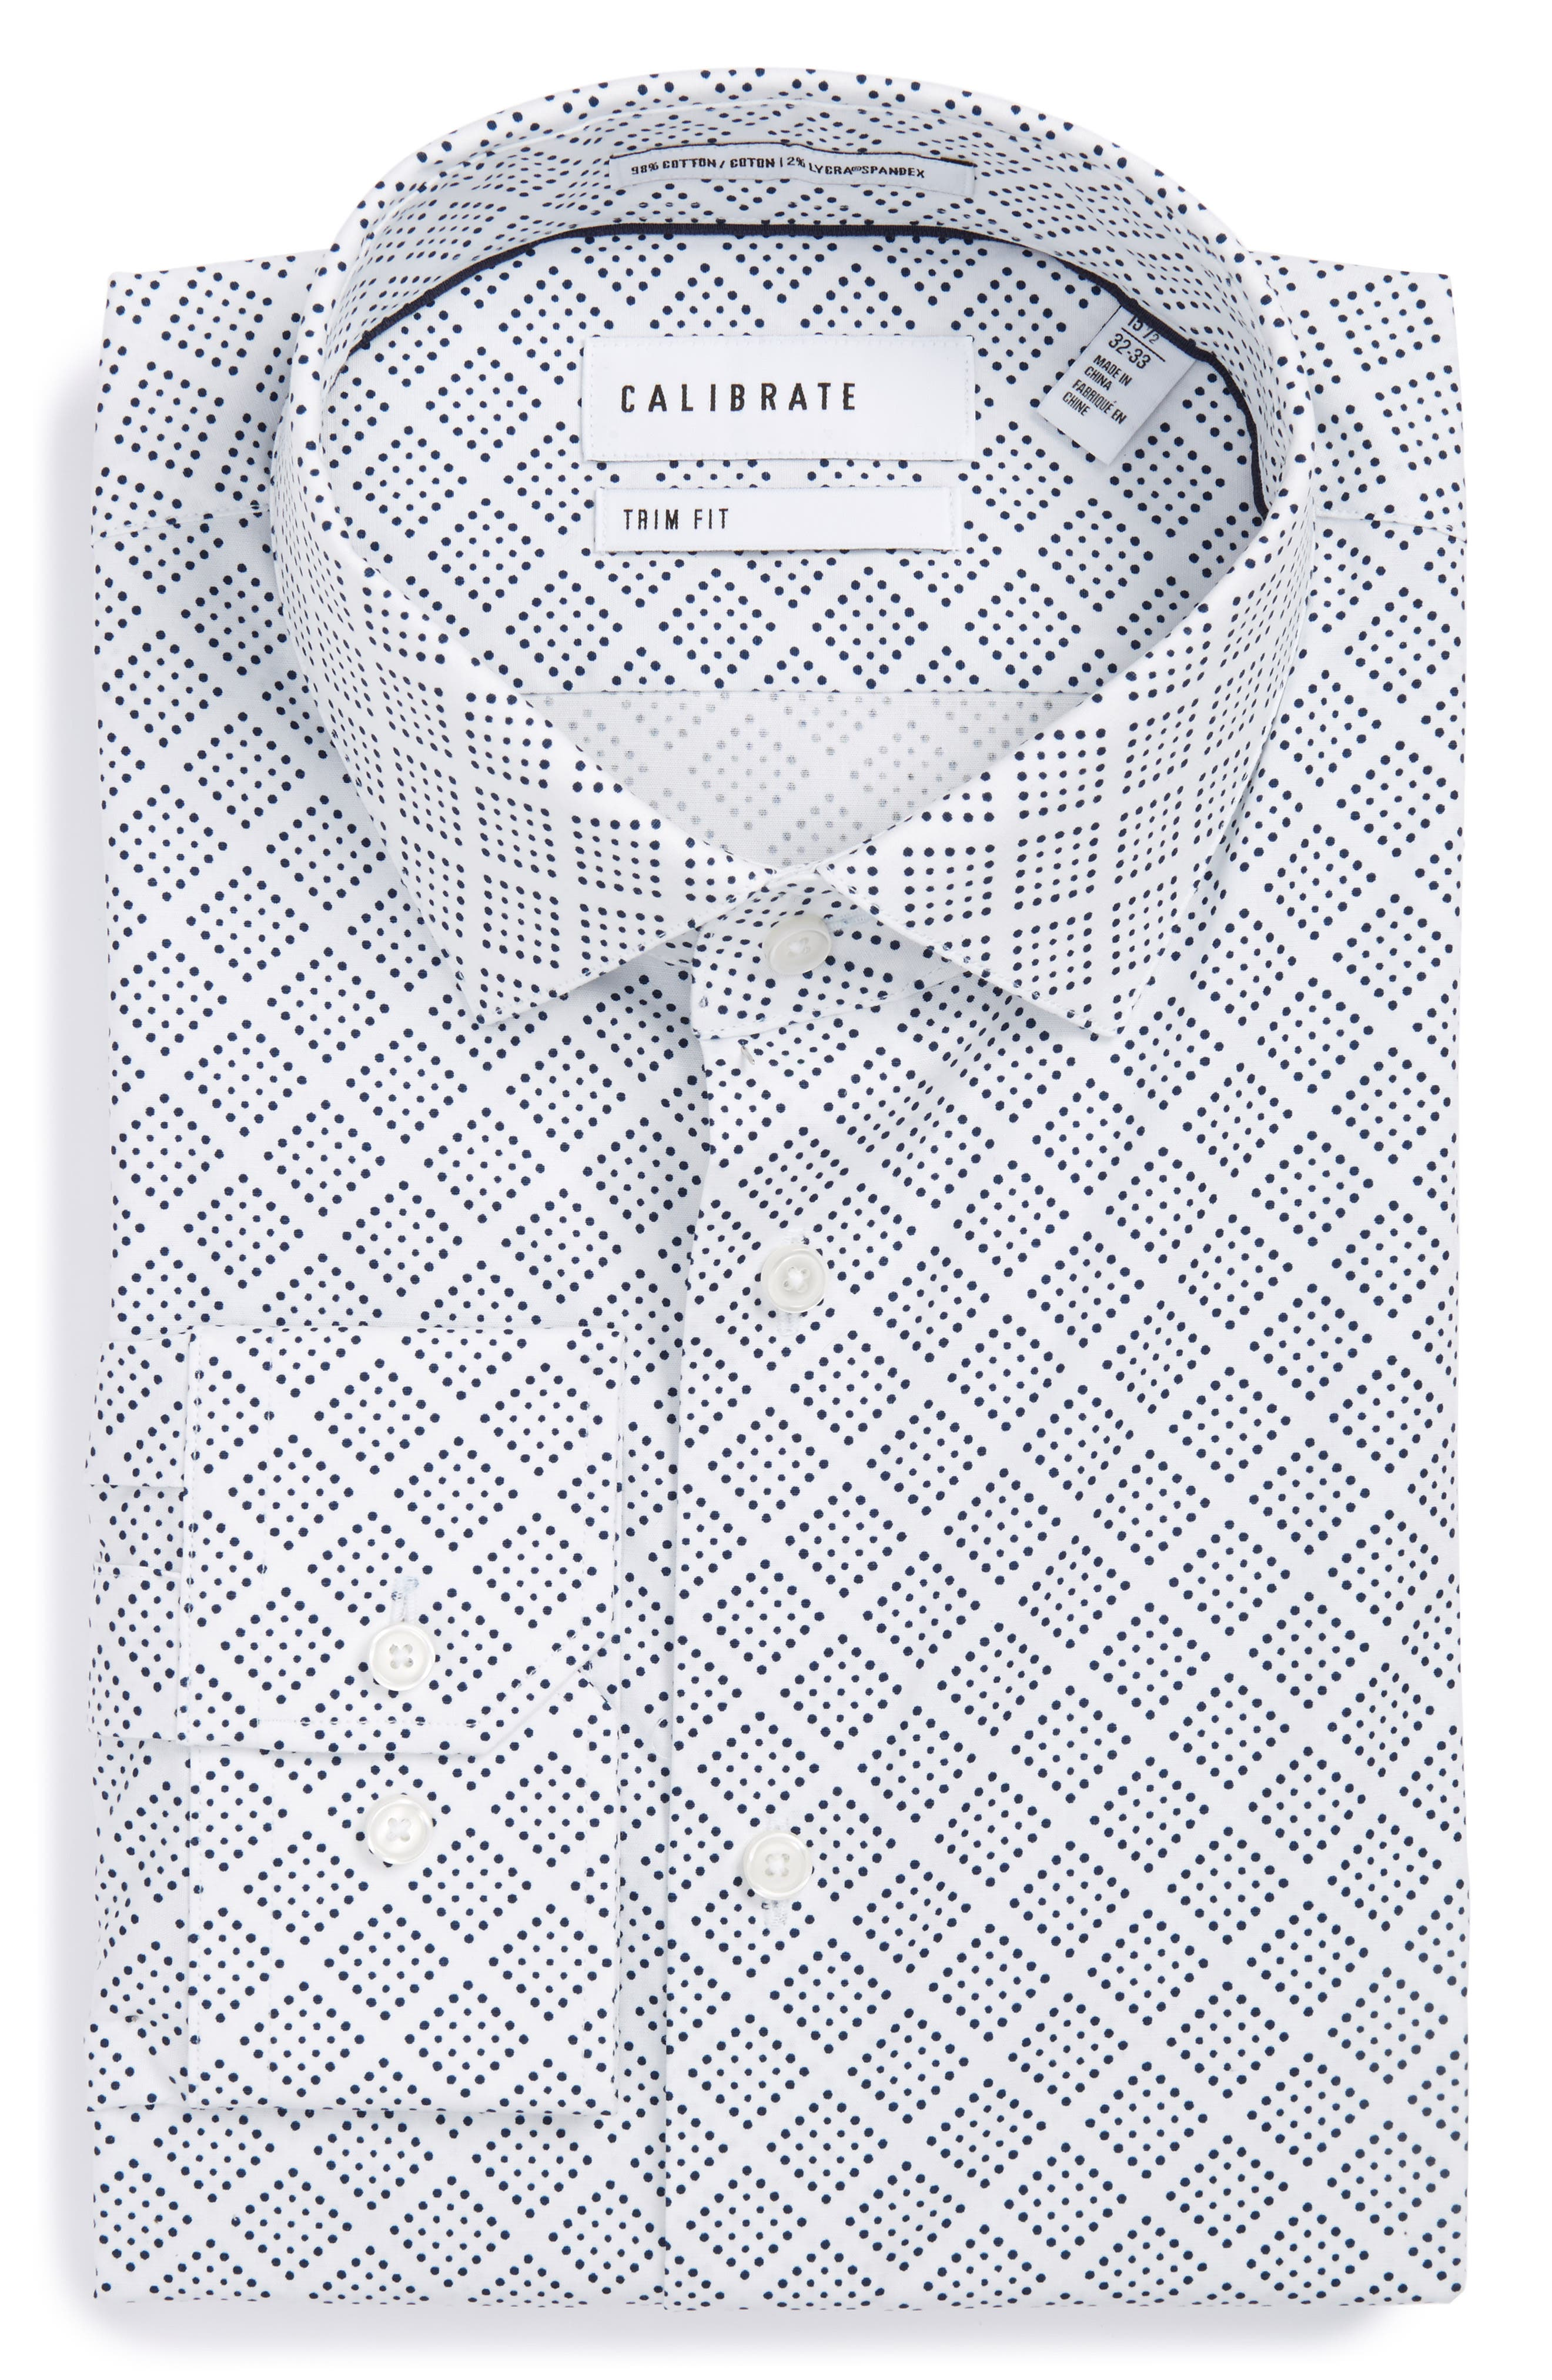 Alternate Image 1 Selected - Calibrate Trim Fit Non-Iron Graphic Stretch Dress Shirt